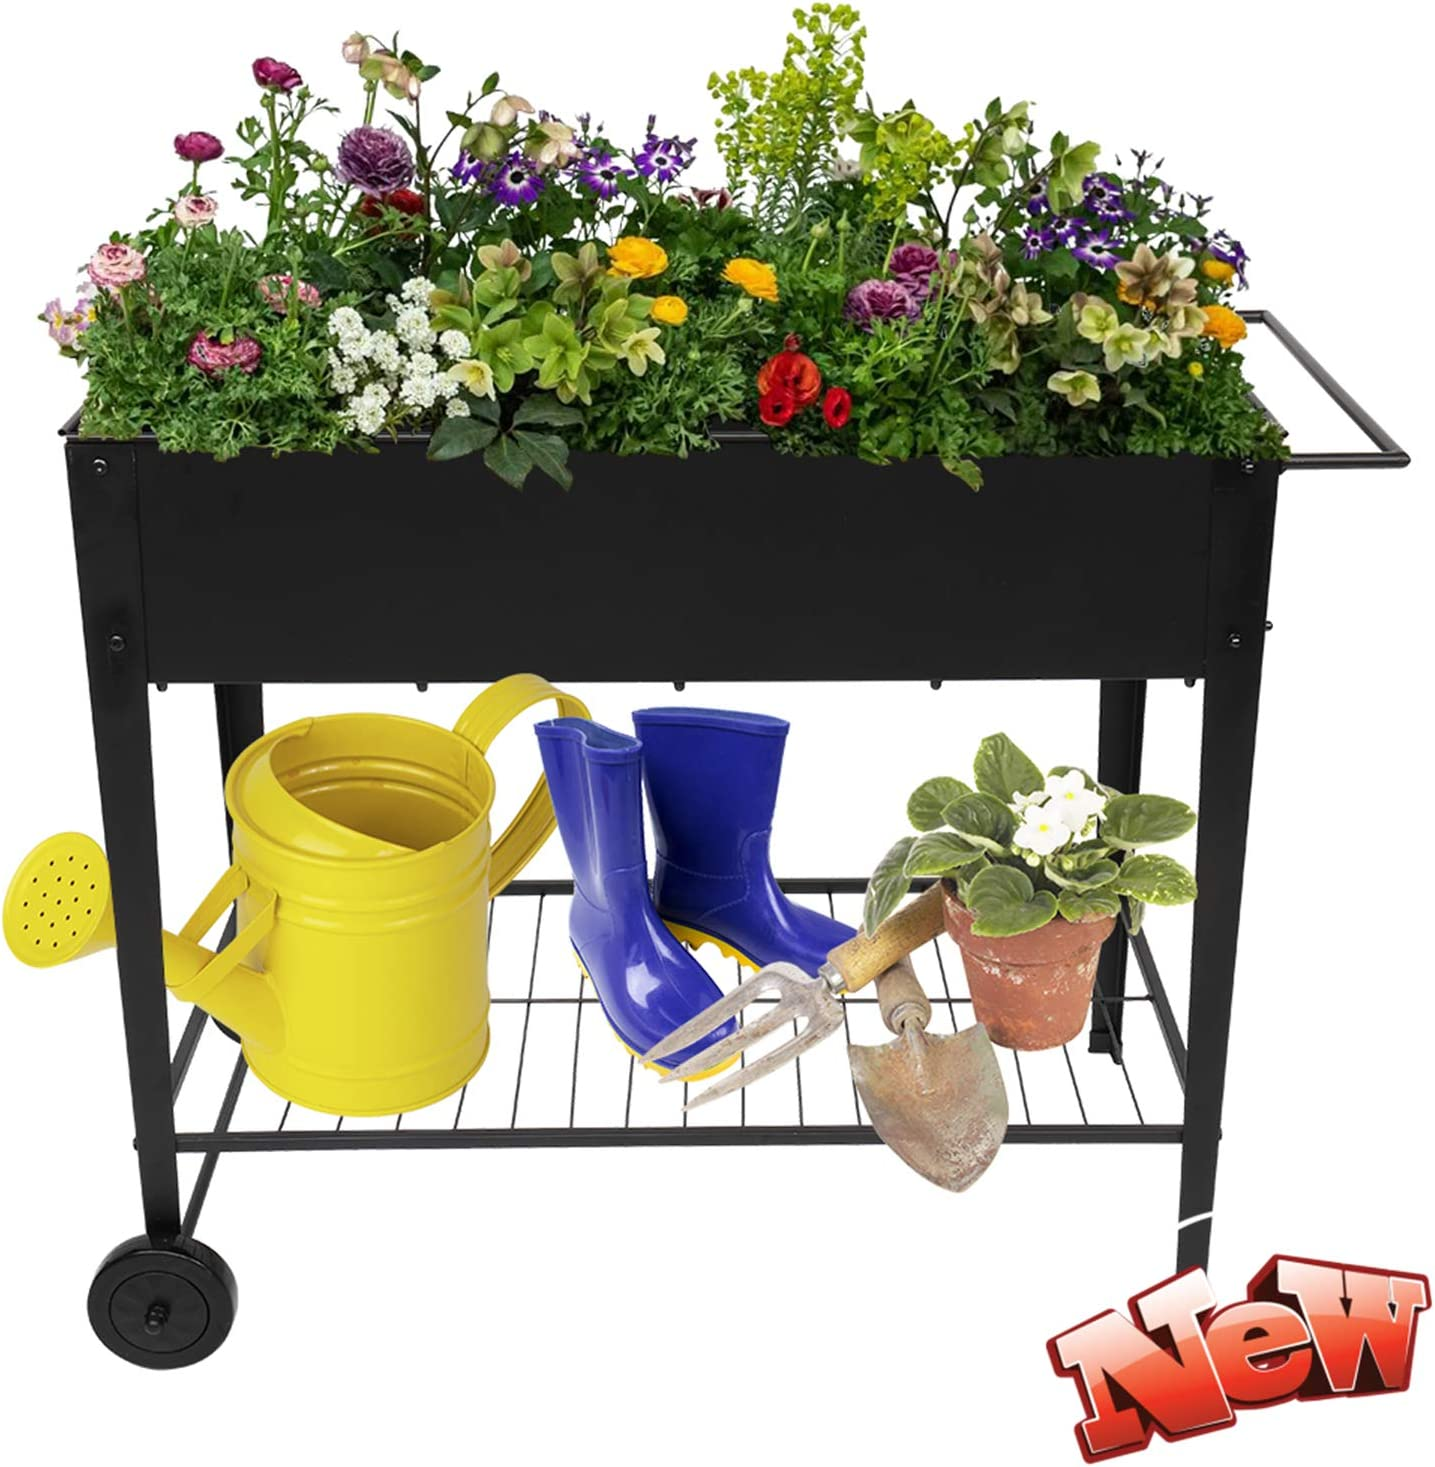 WYOHLLVO Latest Version OFFicial store Max 42% OFF Stronger Metal More Raised Bed Garden